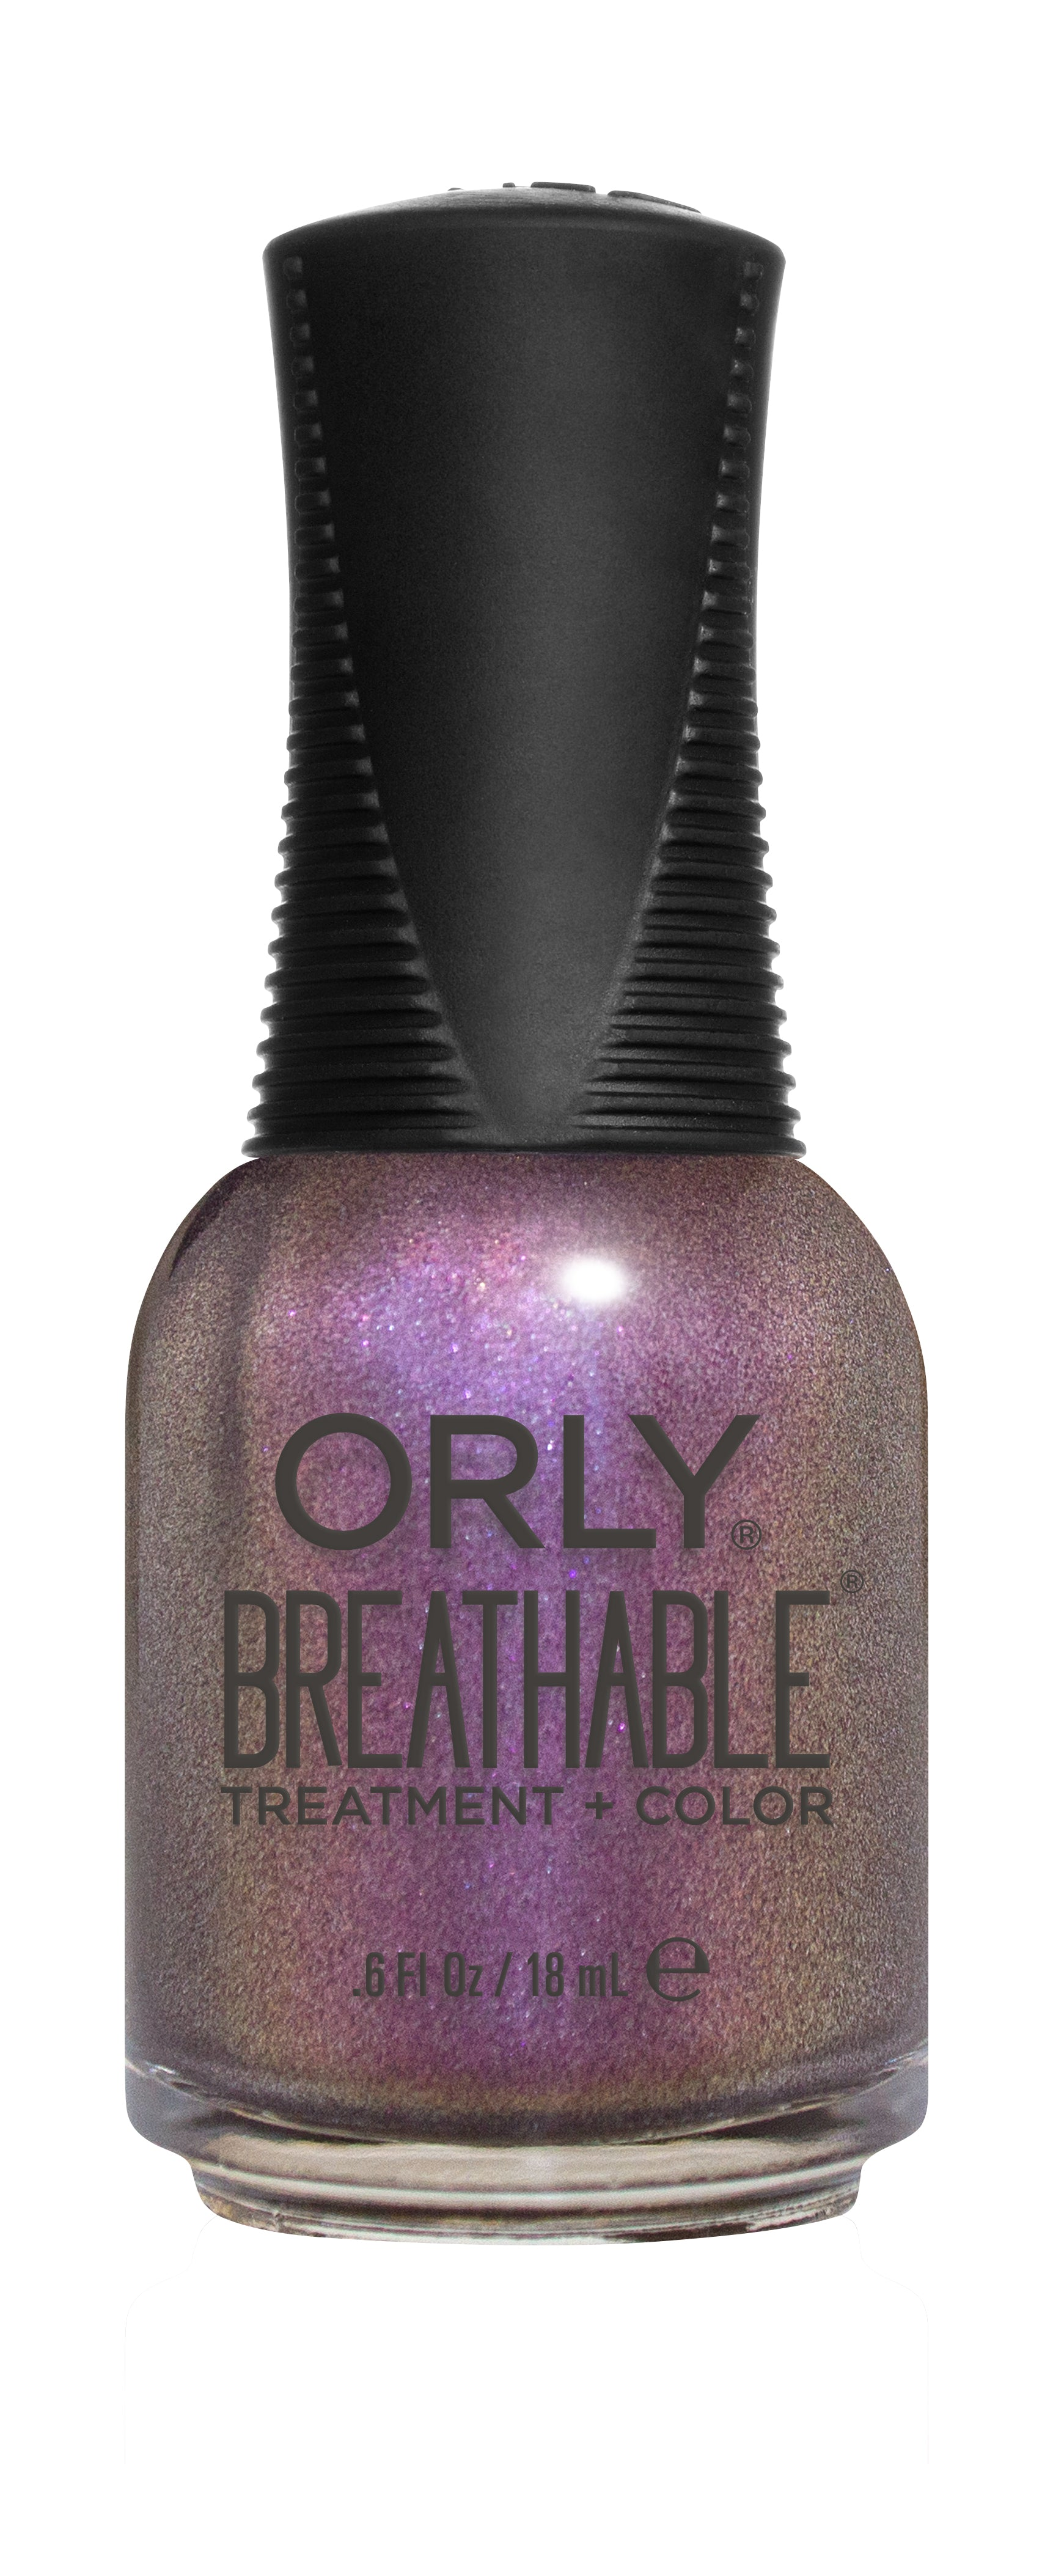 You're A Gem - ORLY Breathable Treatment + Color